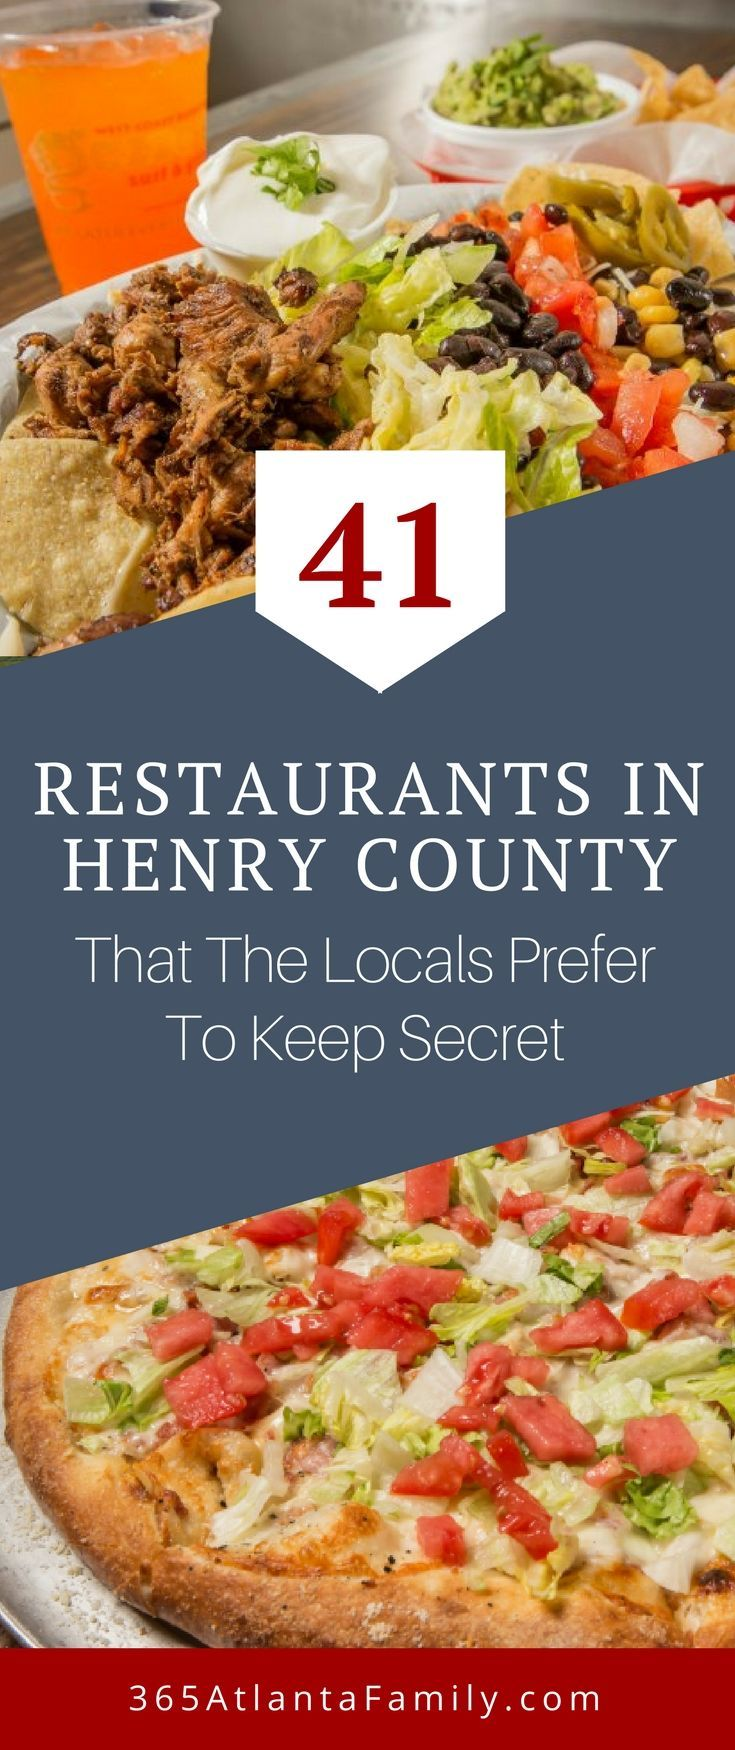 41 Top Restaurants In Henry County That The Locals Prefer To Keep Secret Tasty Travels Pinterest Southern And Georgia